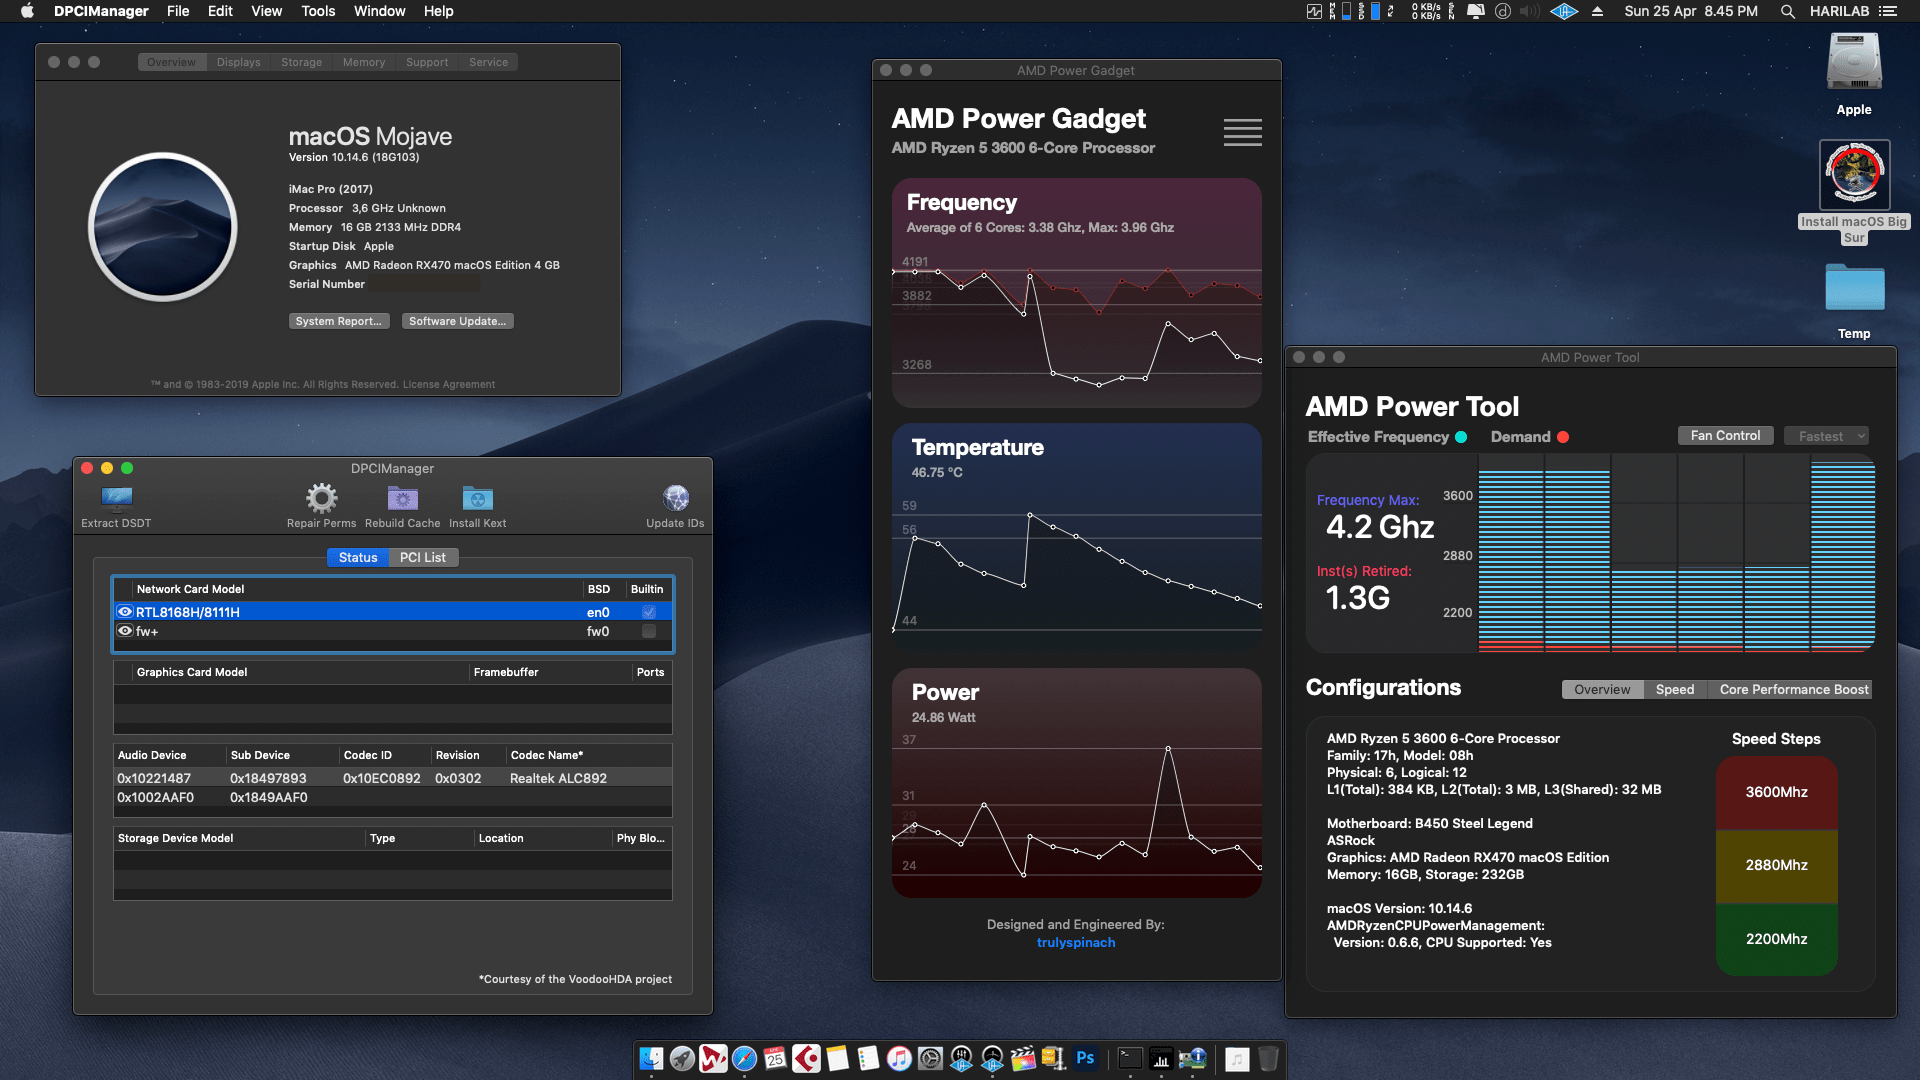 Success Hackintosh macOS Mojave 10.14.6 Build 18G103 in Asrock B450 Steel Legend + AMD Ryzen 5 3600 + AMD RX 470